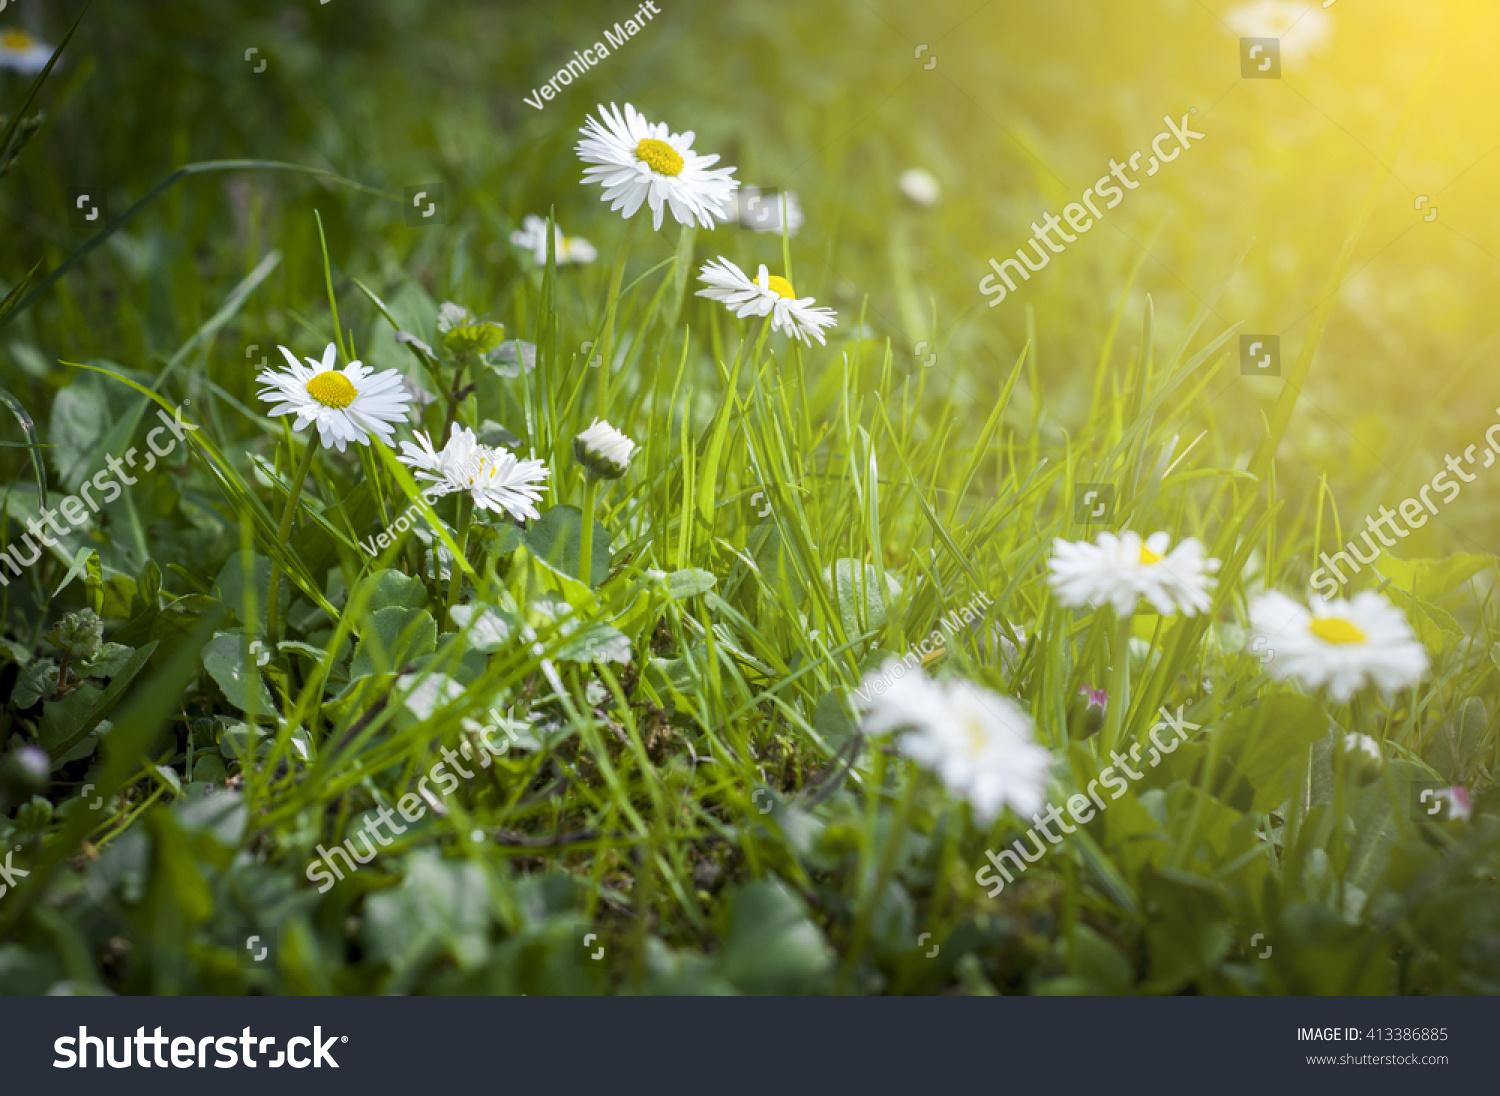 White little flowers in the grass ez canvas id 413386885 izmirmasajfo